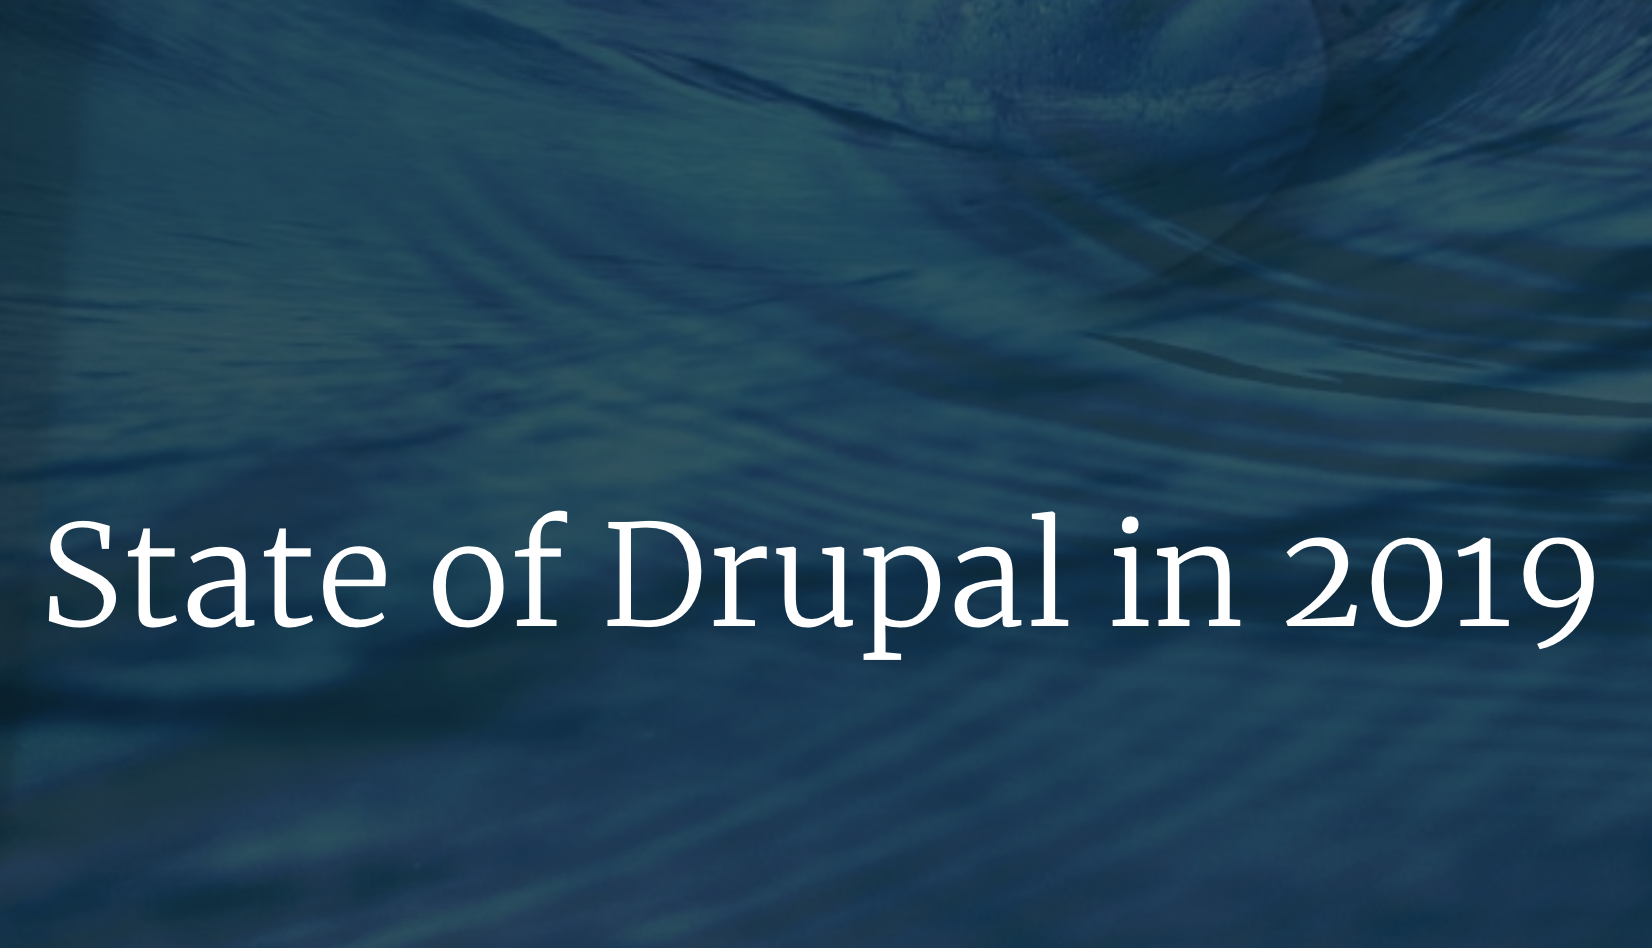 The State of Drupal 2019